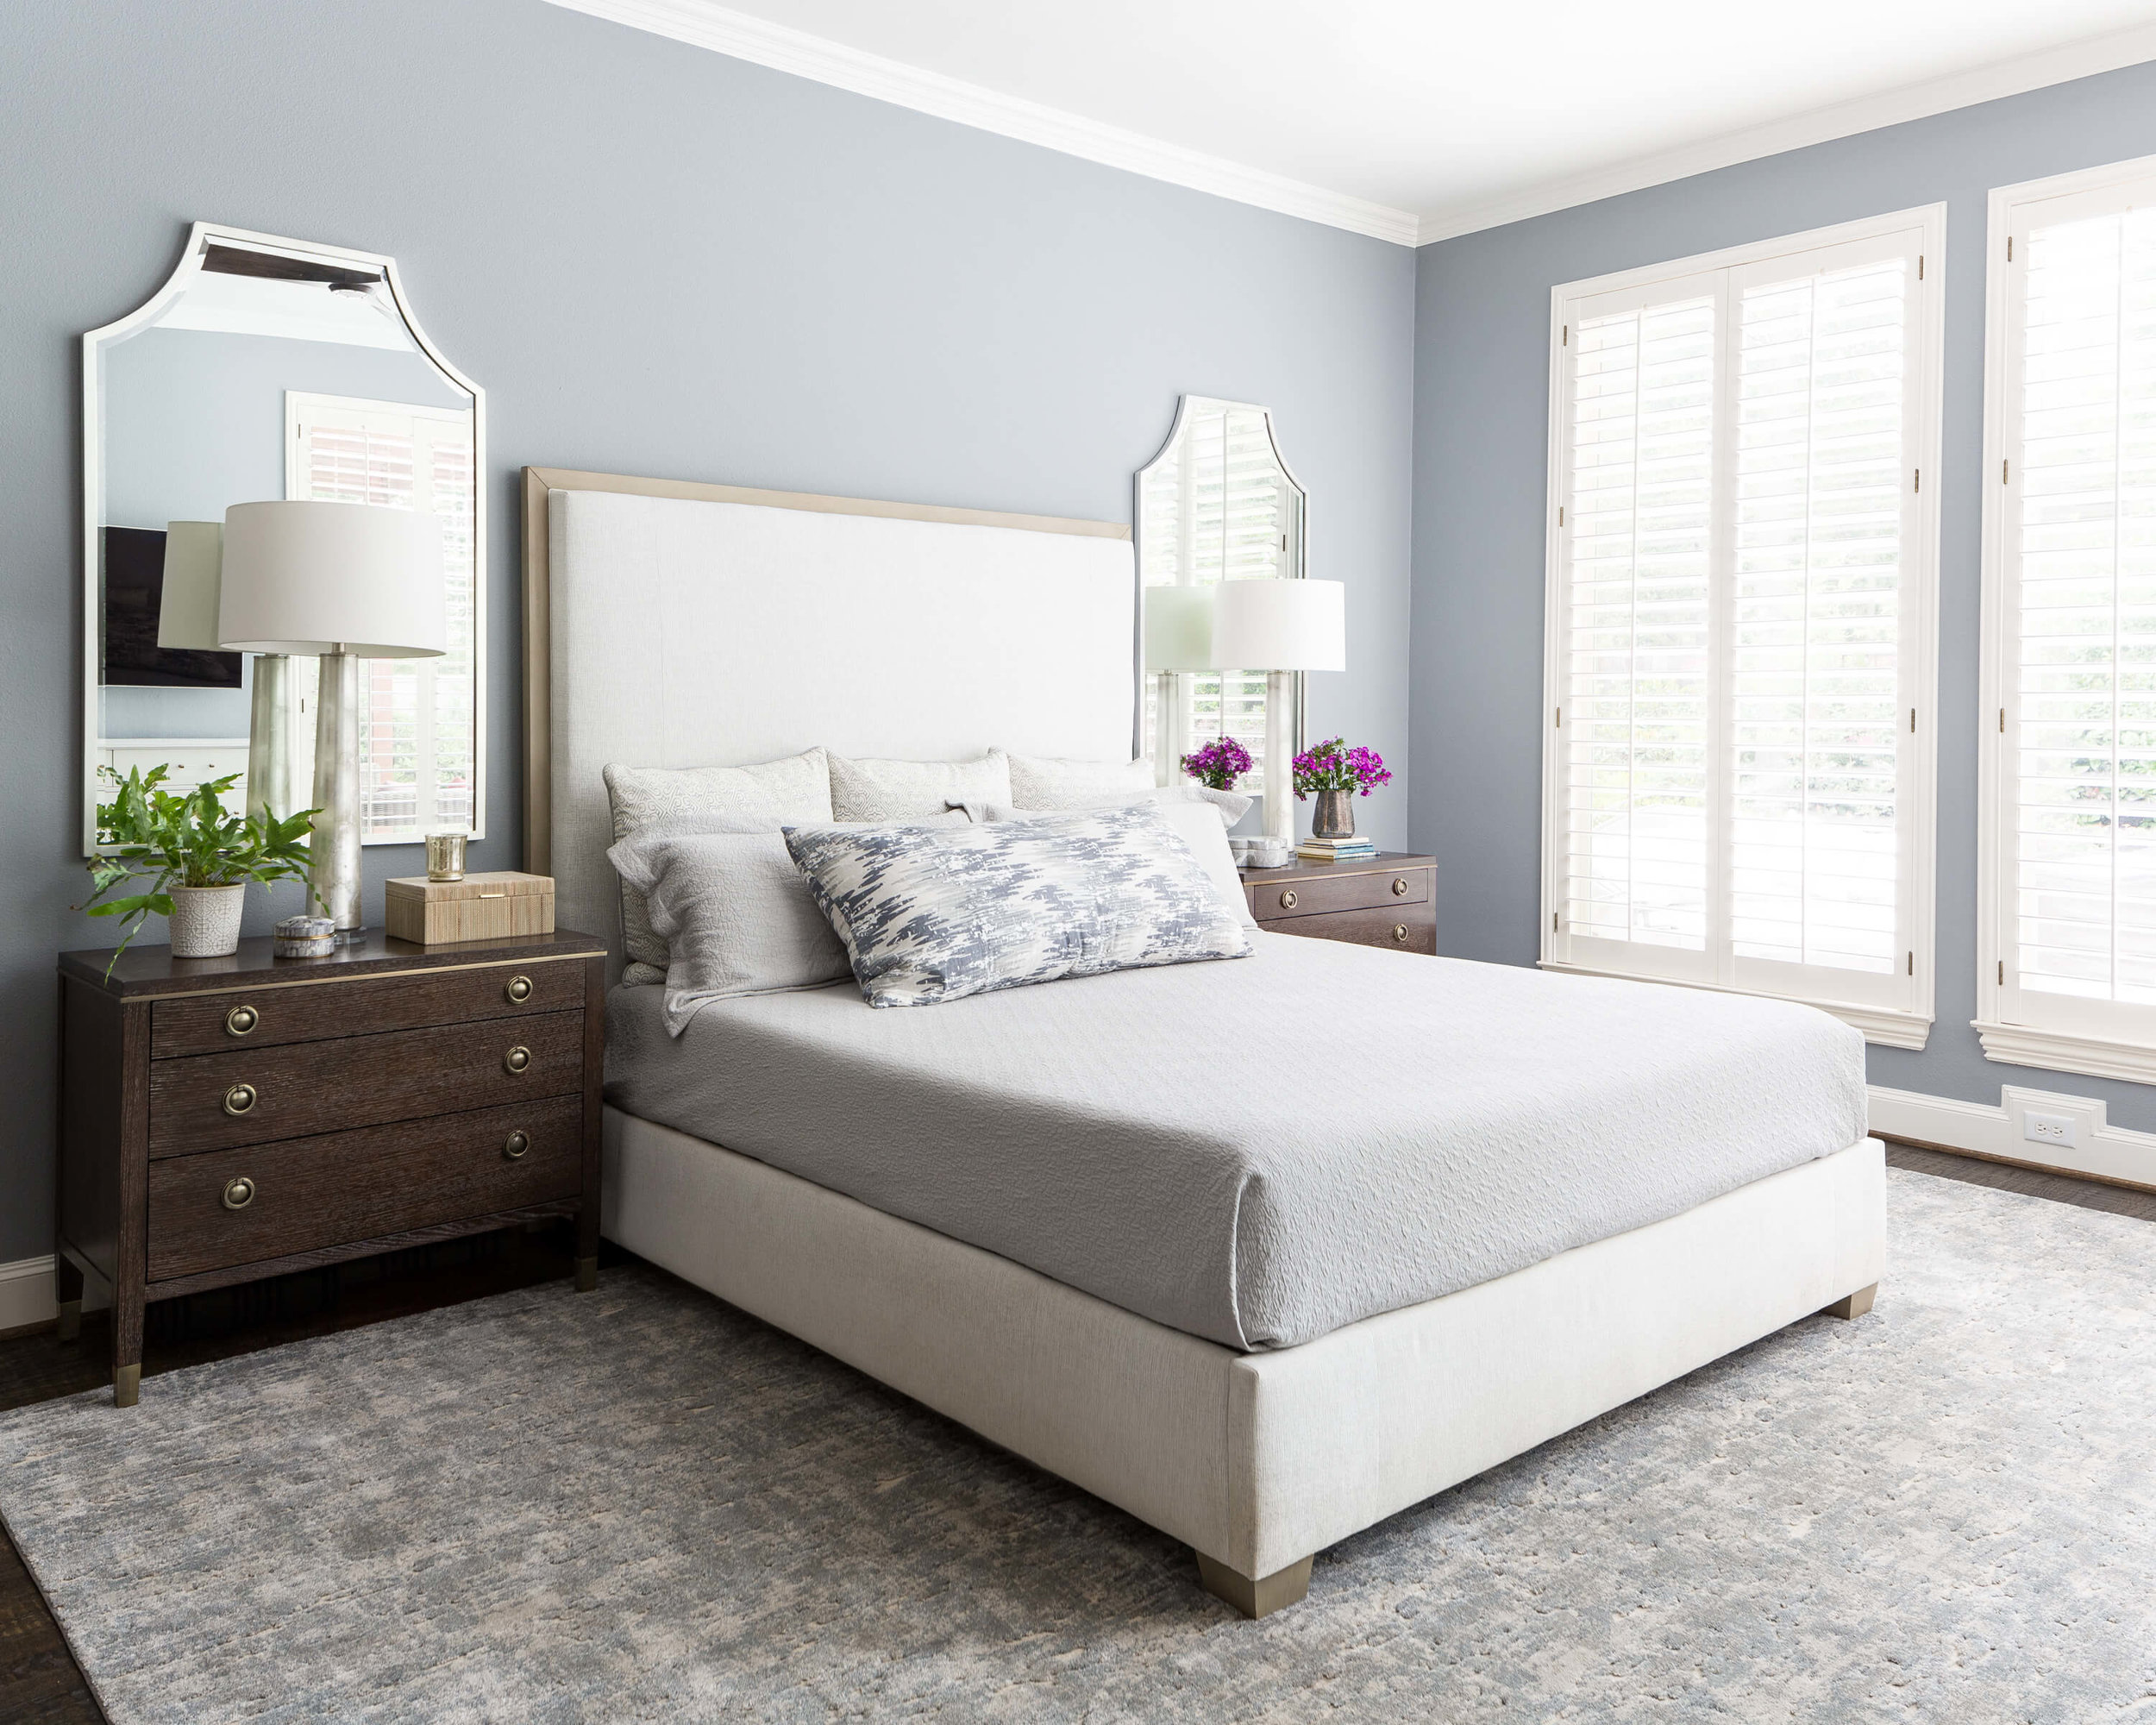 Soothing master bedroom in blue gray color palette with dual mirrors and glass lamps on dark wood nightstands. Carla Aston, Designer | Colleen Scott, Photographer #masterbedroom #nightstand #headboard